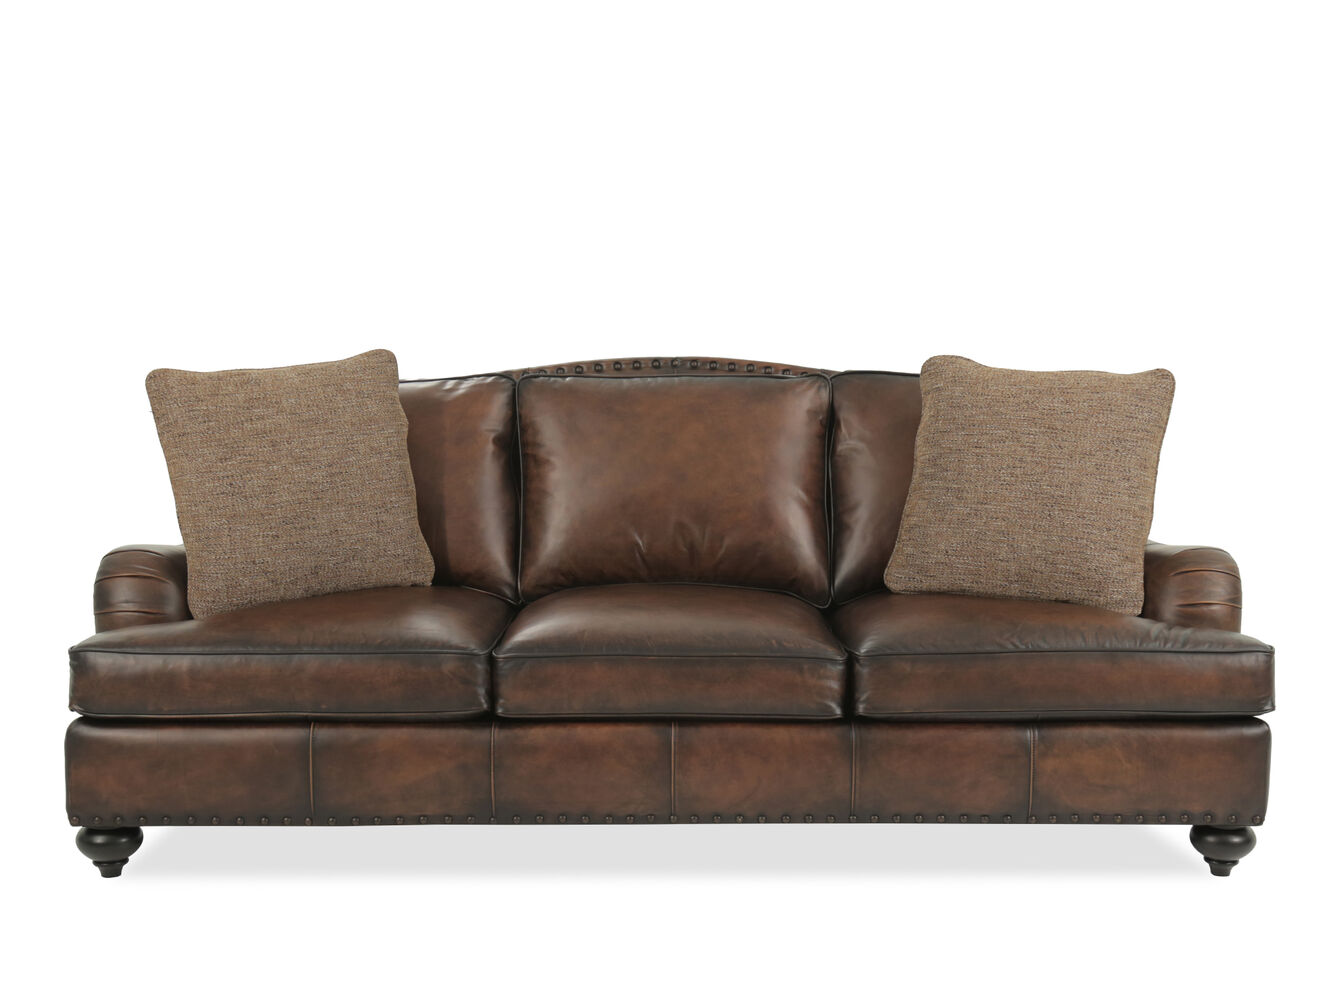 Bernhardt fulham leather sofa mathis brothers furniture for Mathis brothers living room furniture sectional sofas